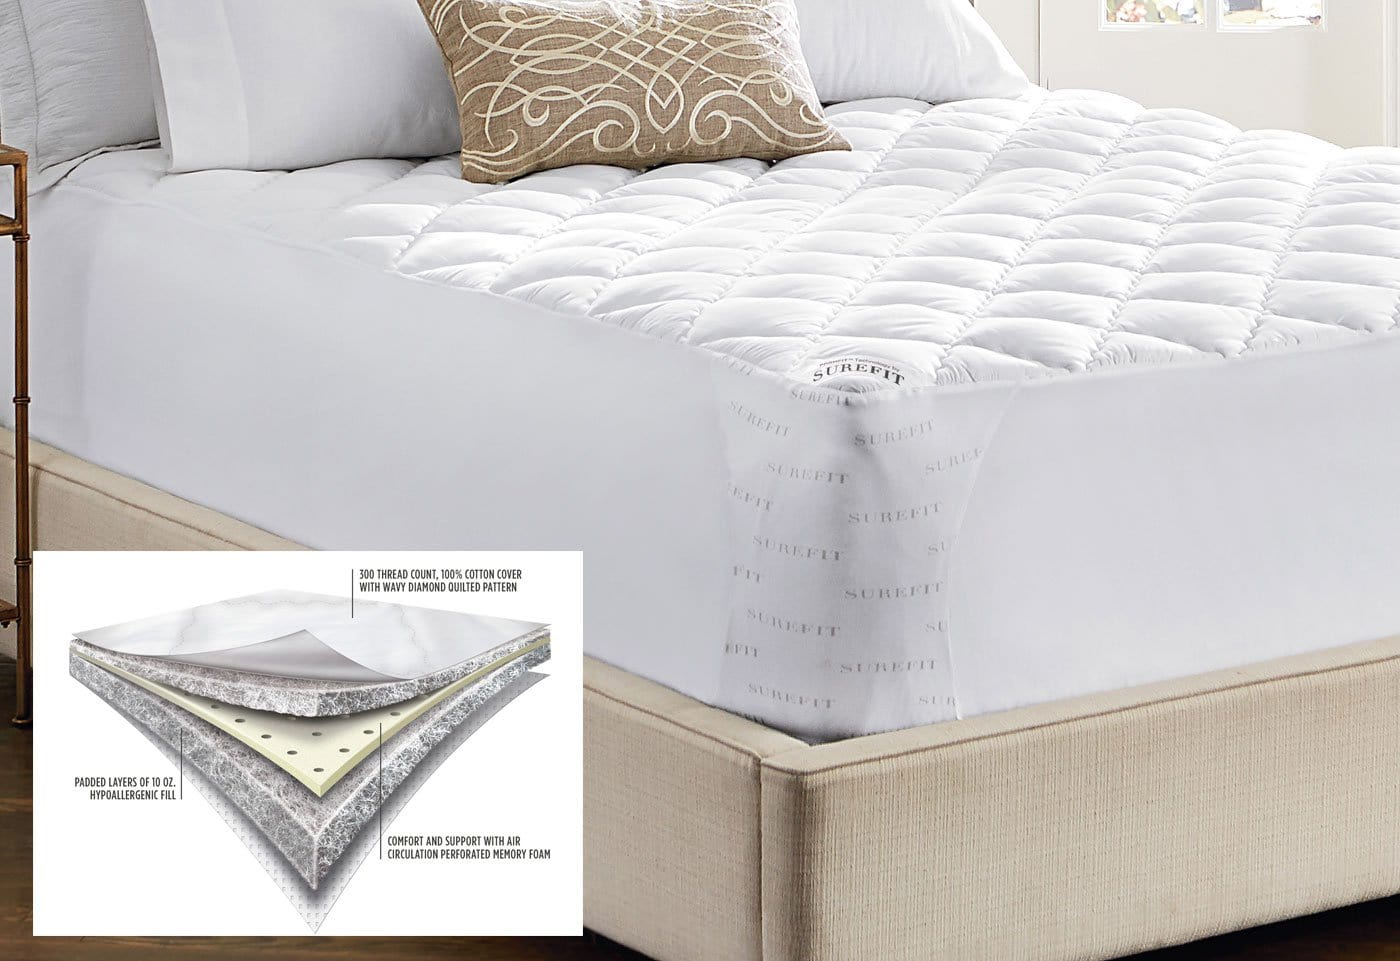 memory foam mattress pad - Memory Foam Mattress